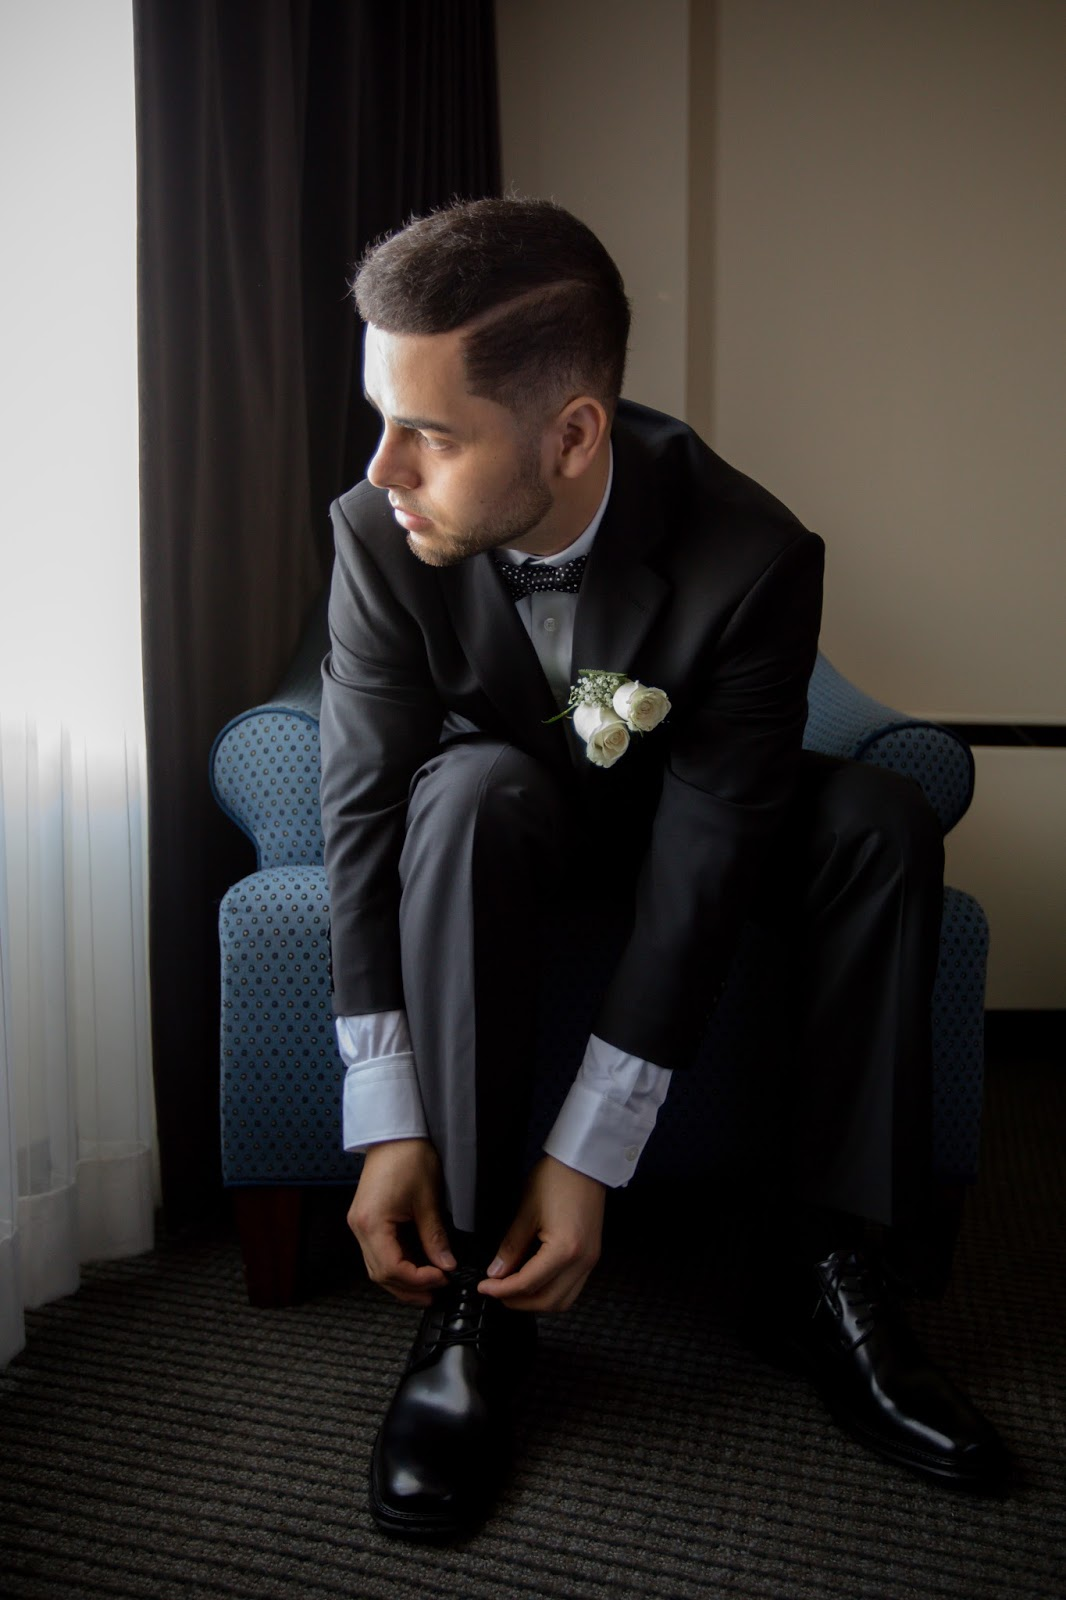 Groom Tying Shoes in Deep Thought